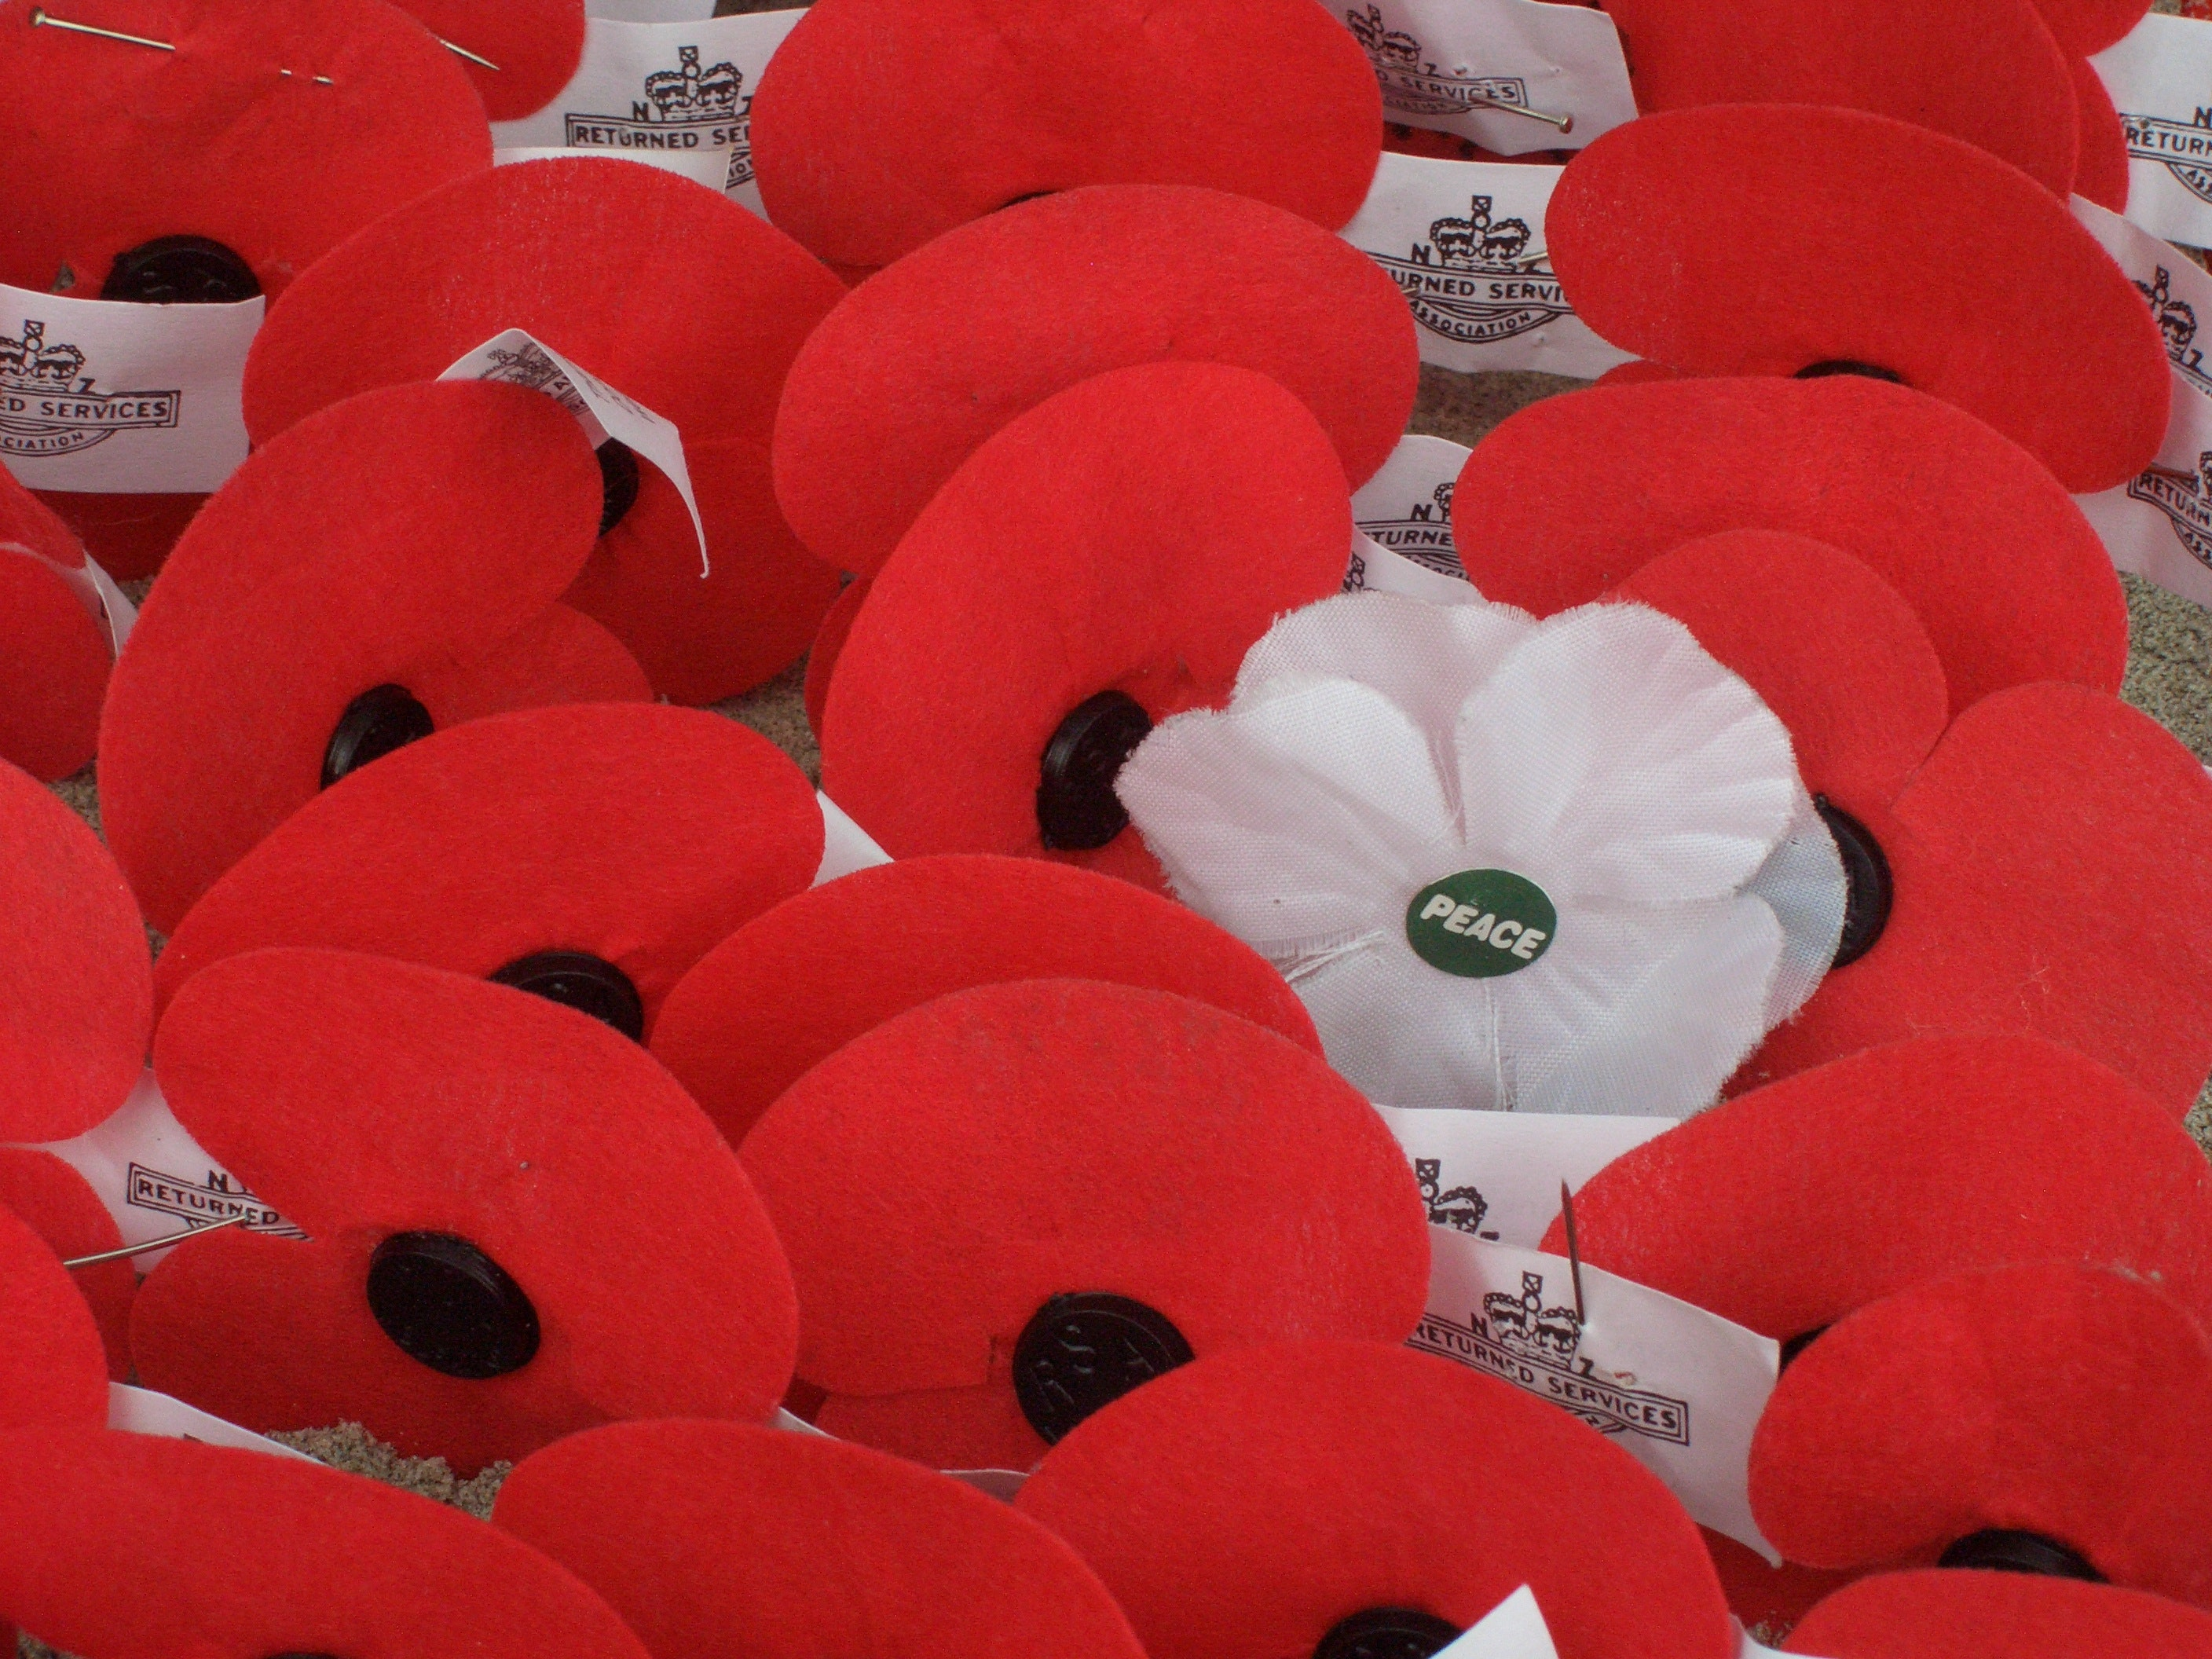 Artificial poppies left at the Waitati cenotaph in New Zealand (2009). The white poppy is used as a symbol of peace. Nankai/Wikimedia Commons, CC BY-SA